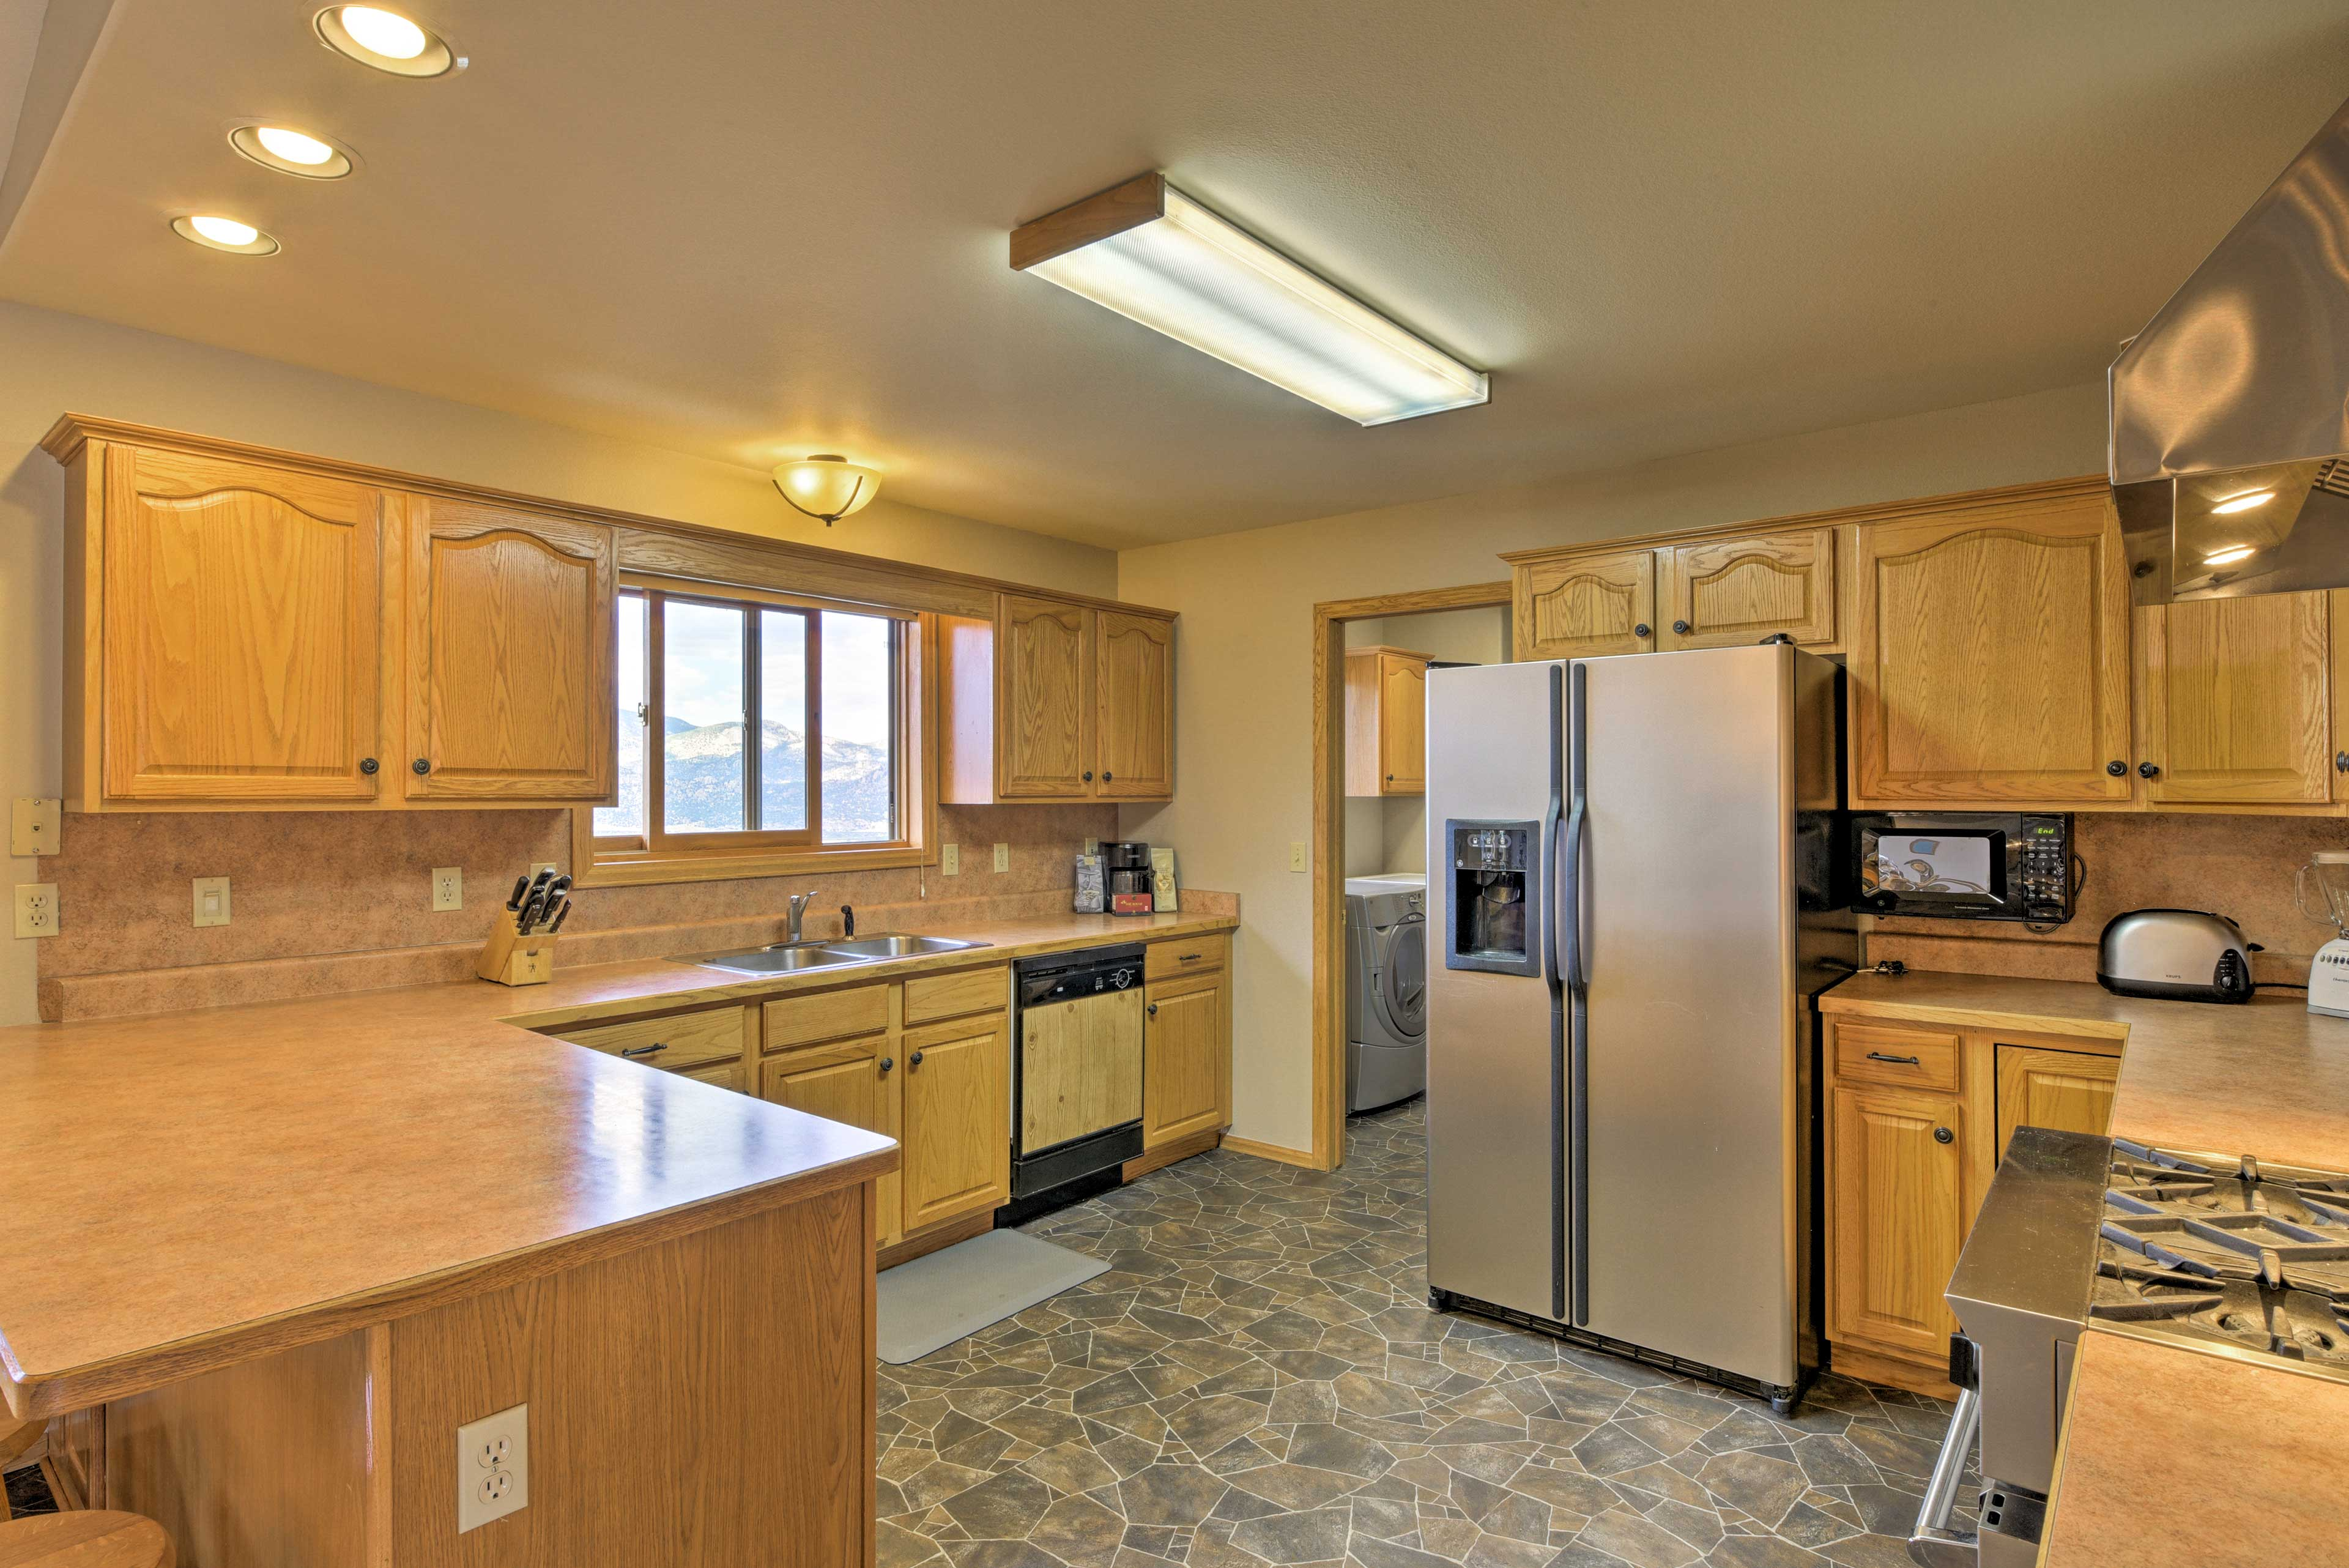 Homemade meals are easy as pie in this fully equipped kitchen!